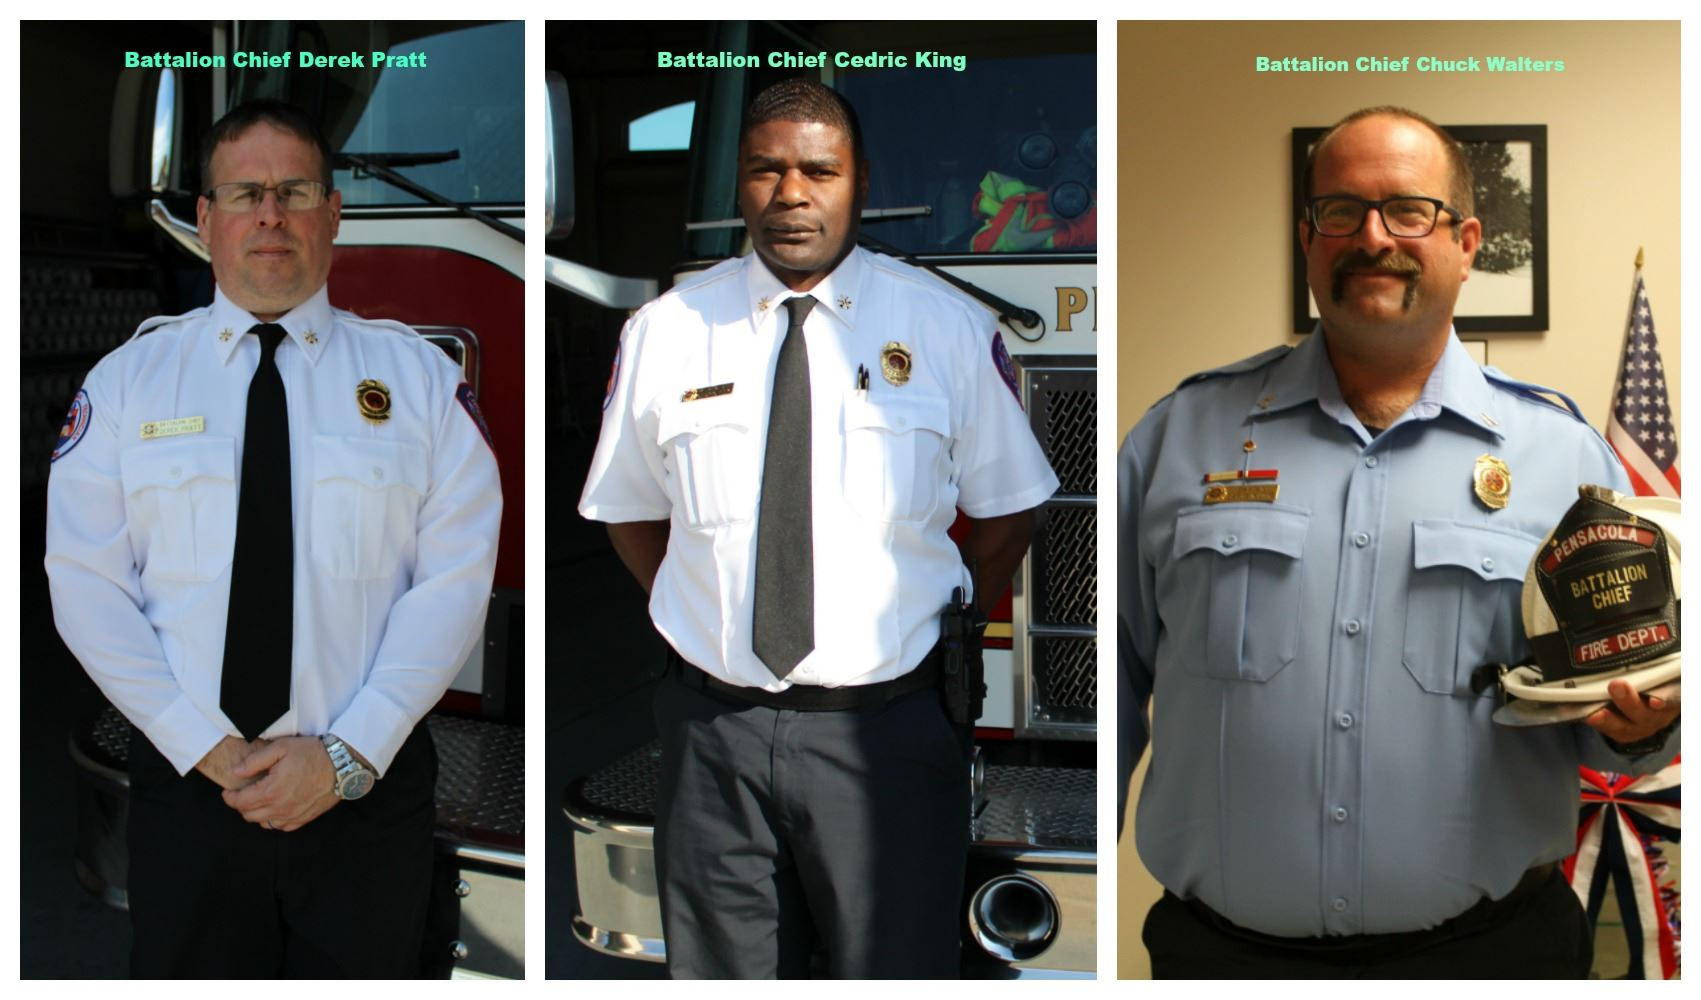 Battalion Chief Derek Pratt, Battalion Chief Cedric King and Battalion Chief Chuck Walters